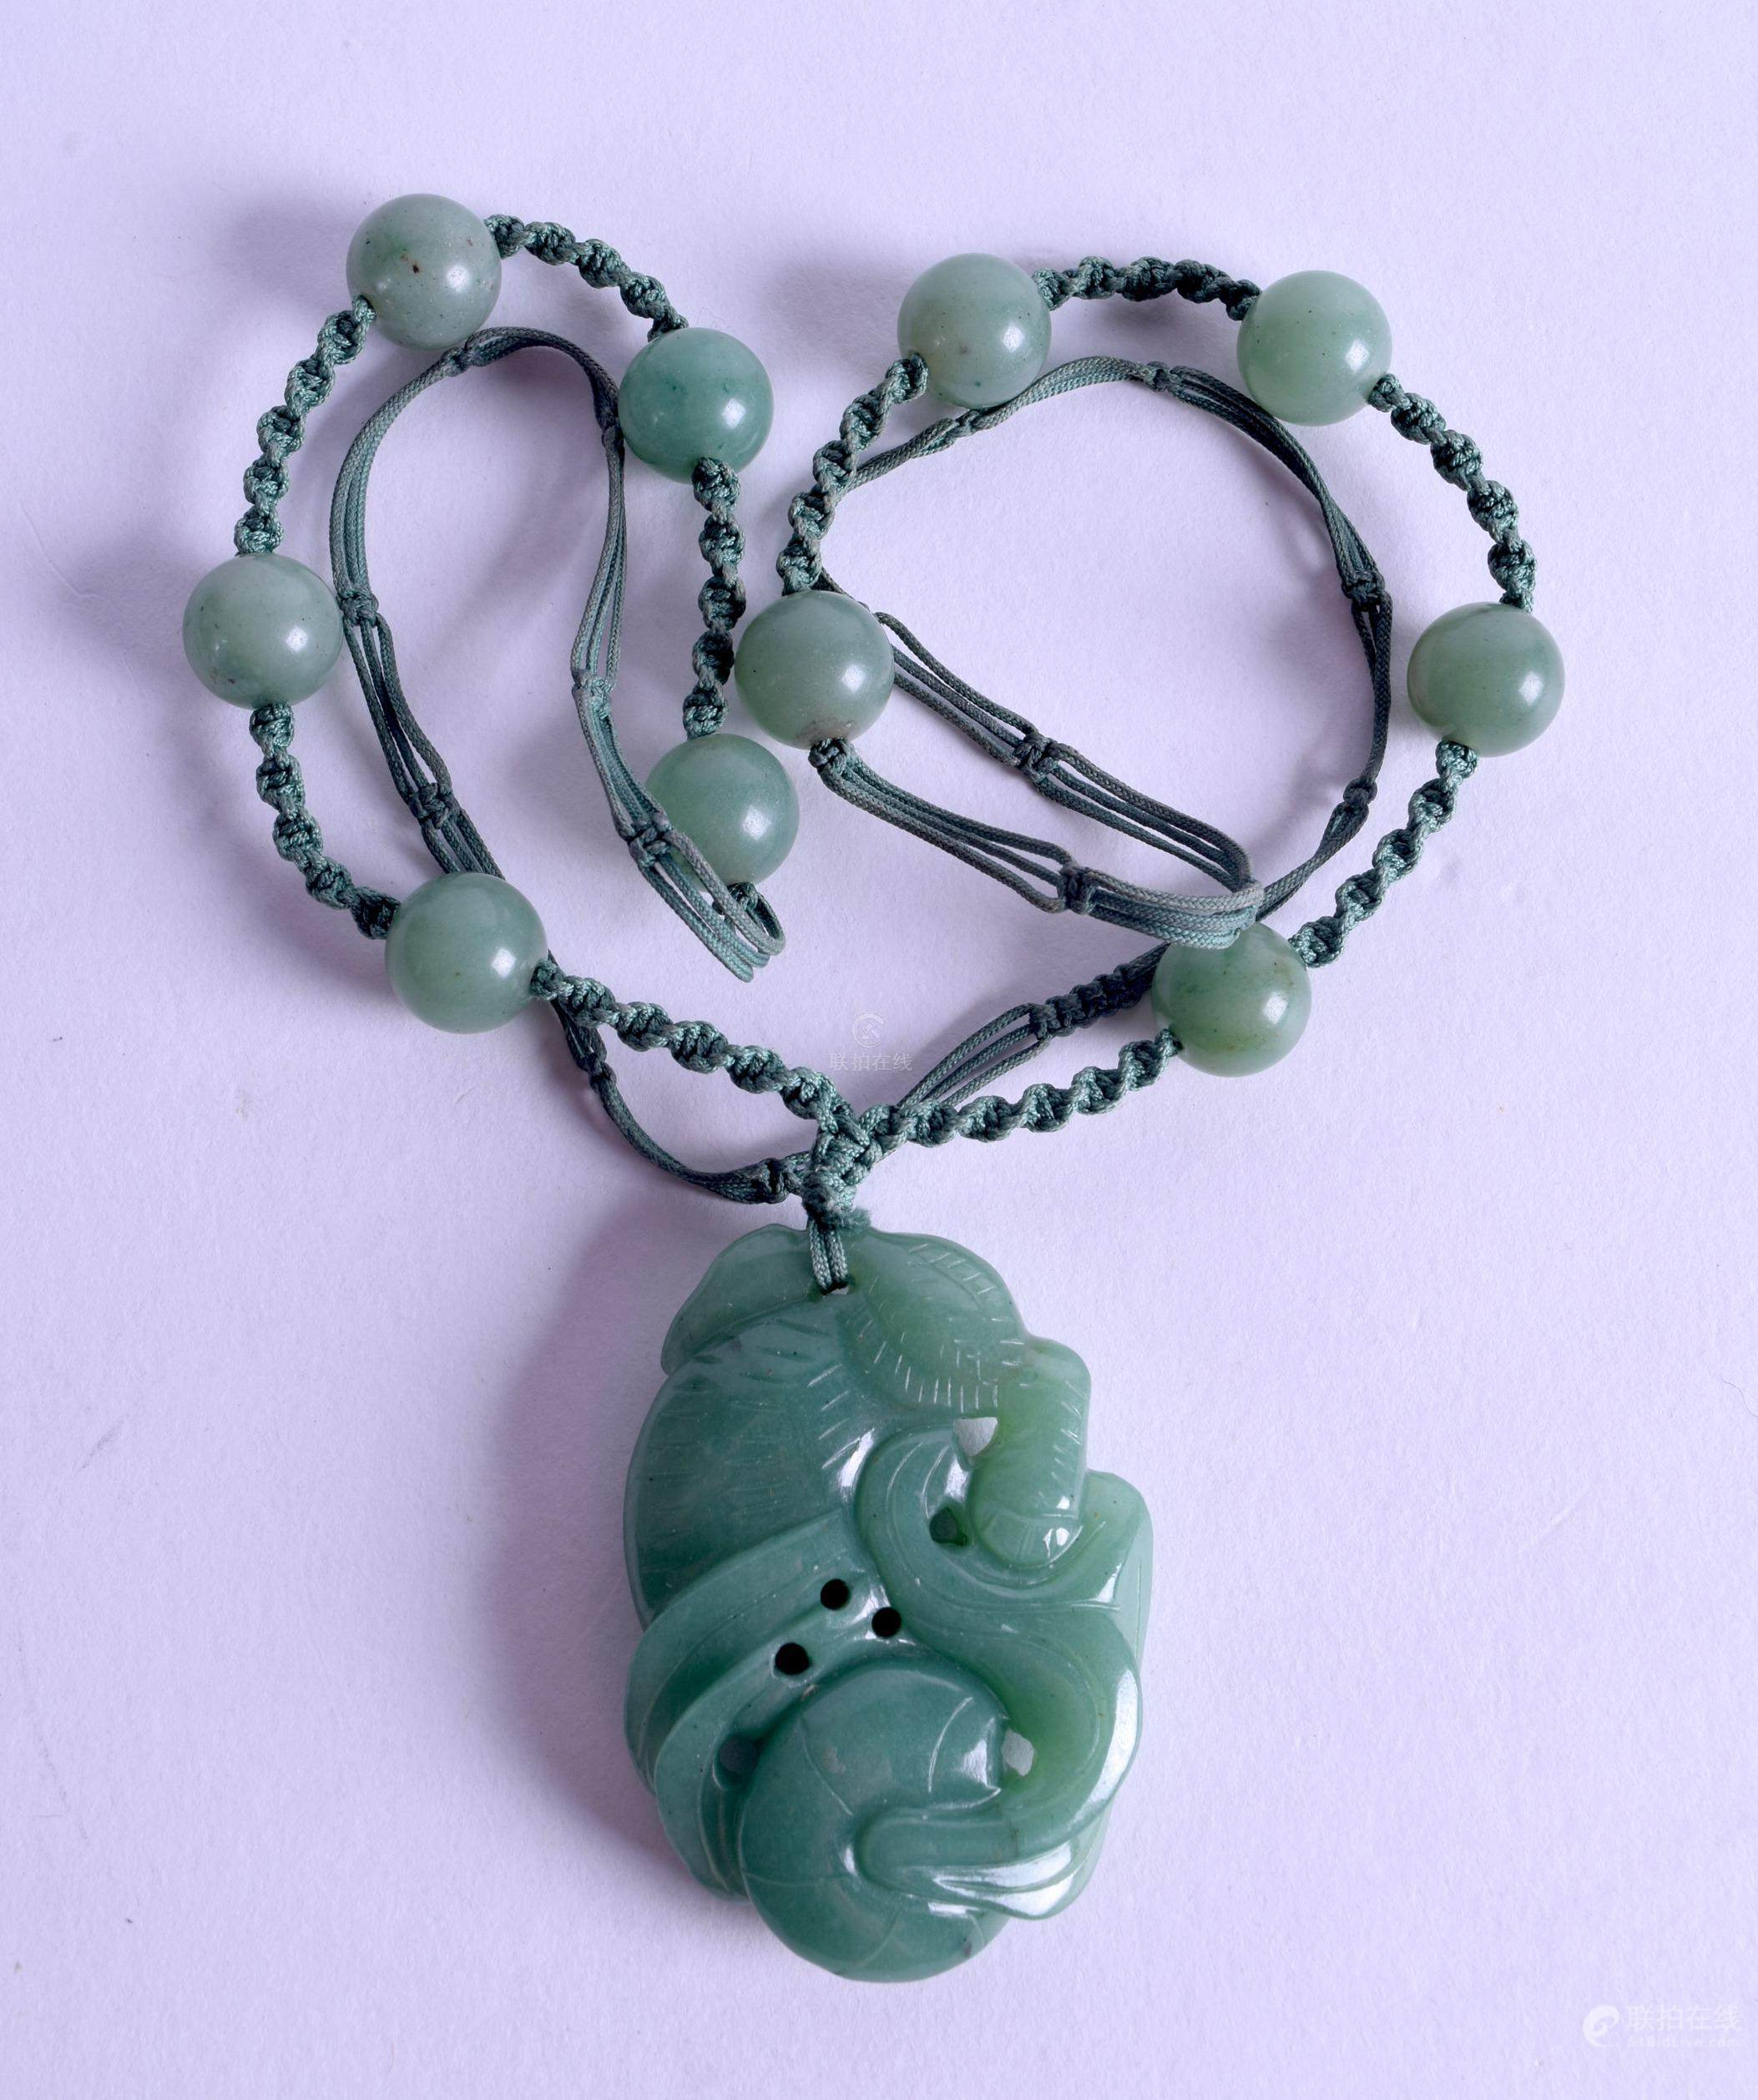 qing carved lion cm chinese buddhistic necklace pendant an early century jade the item